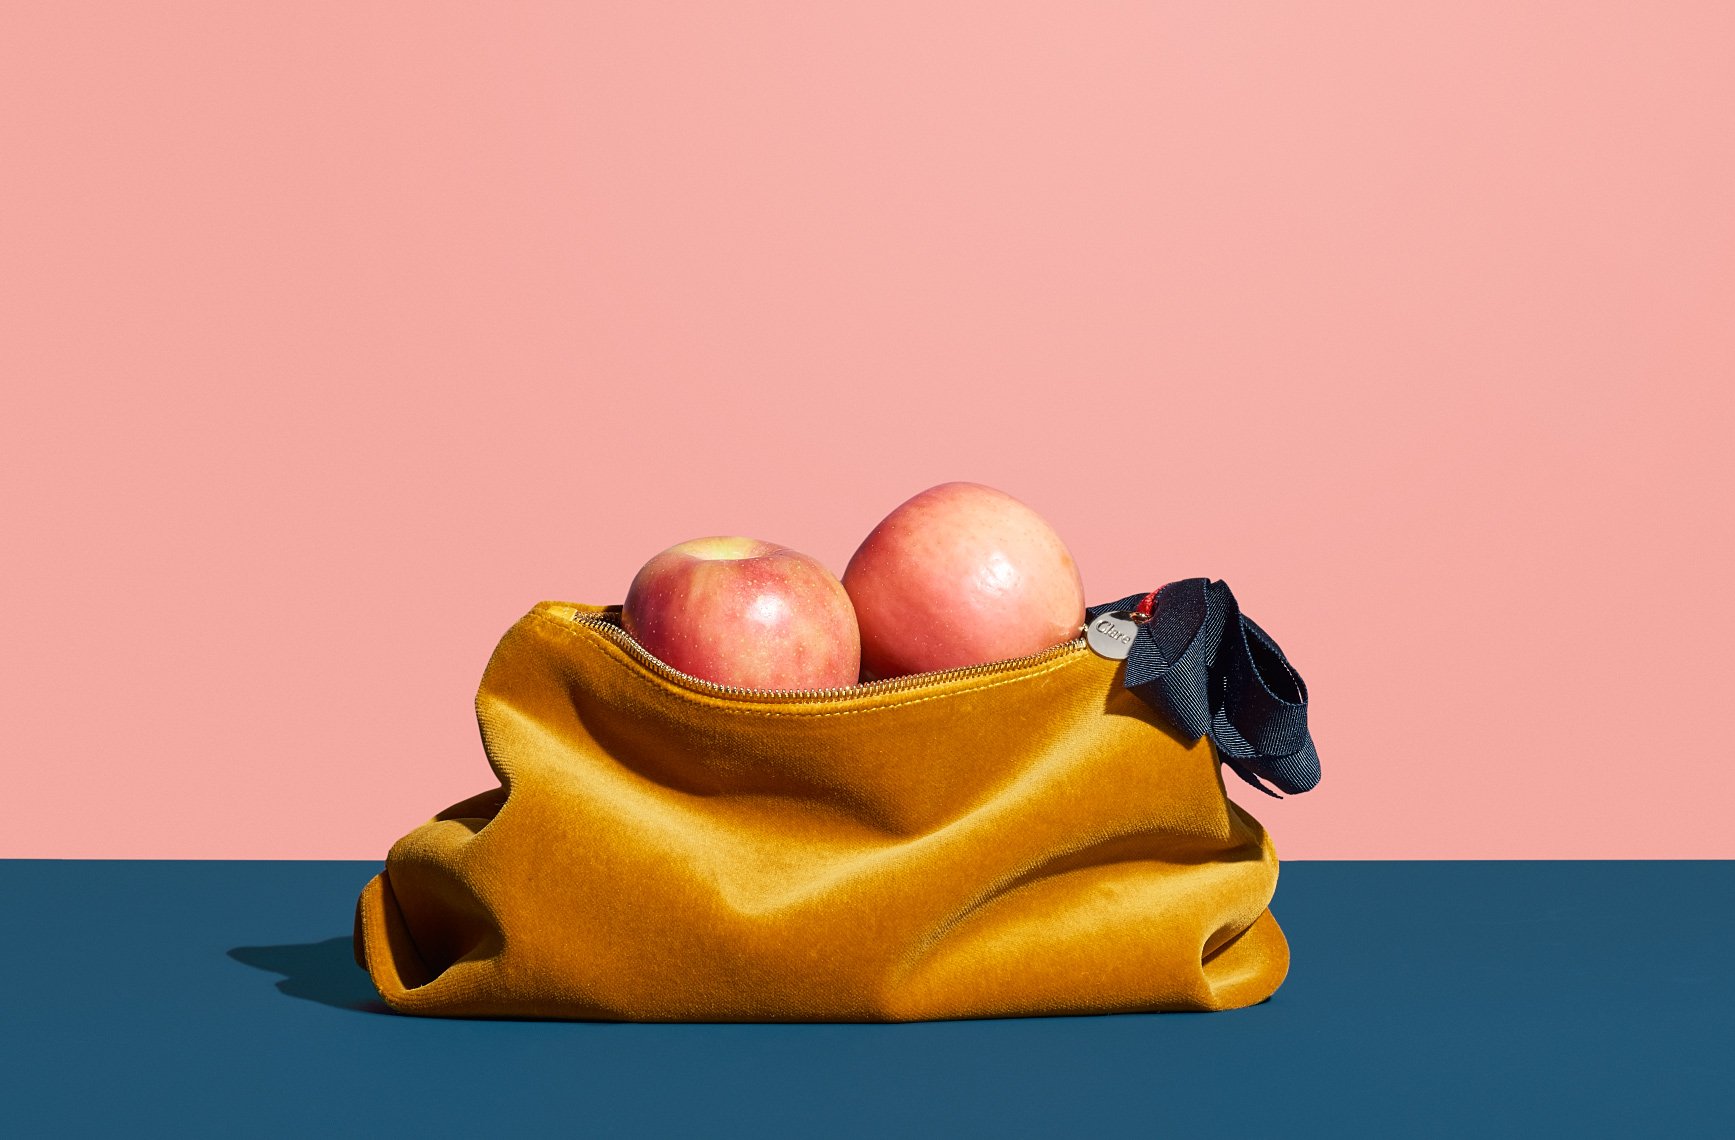 Gold Clare V clutch handbag with apples